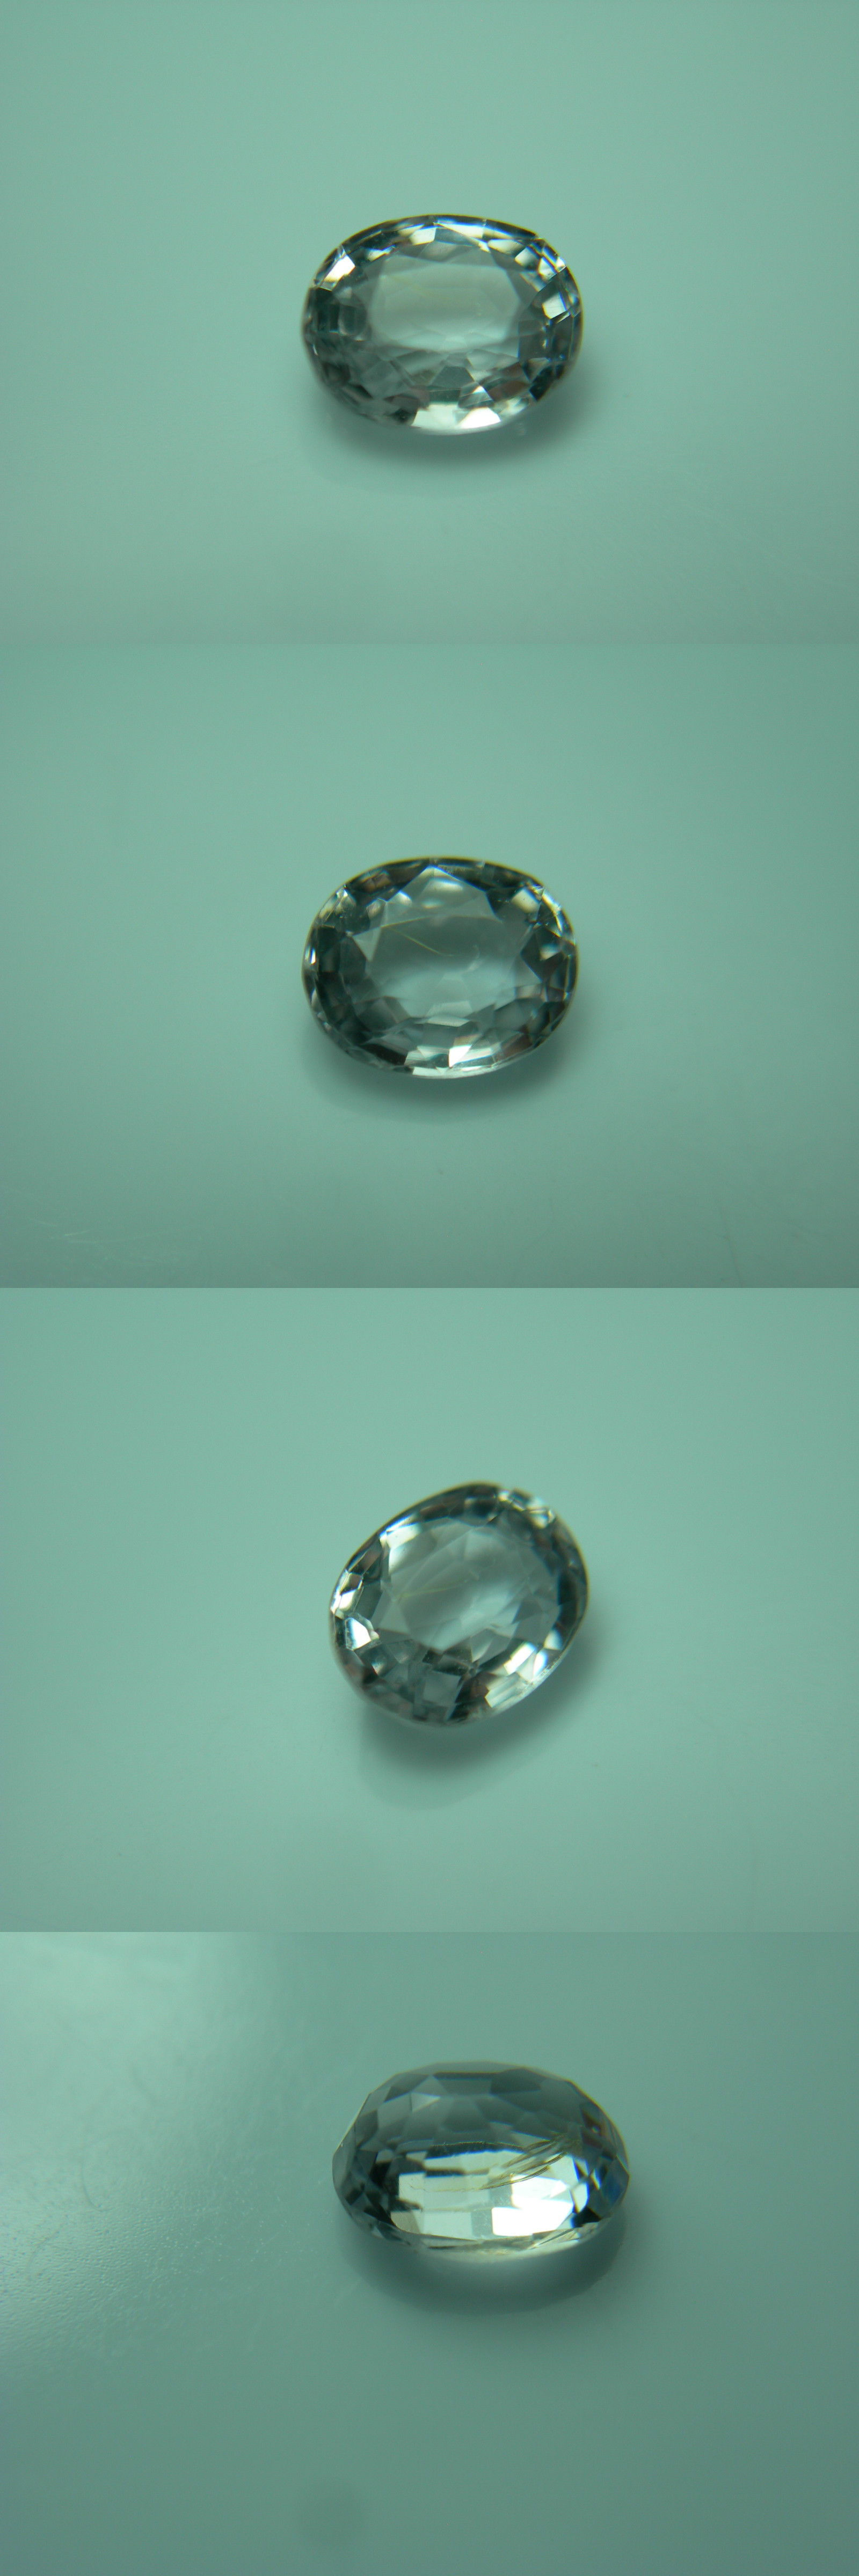 Spinel 110873: Very Rare Near Colorless Spinel Gem Natural ...